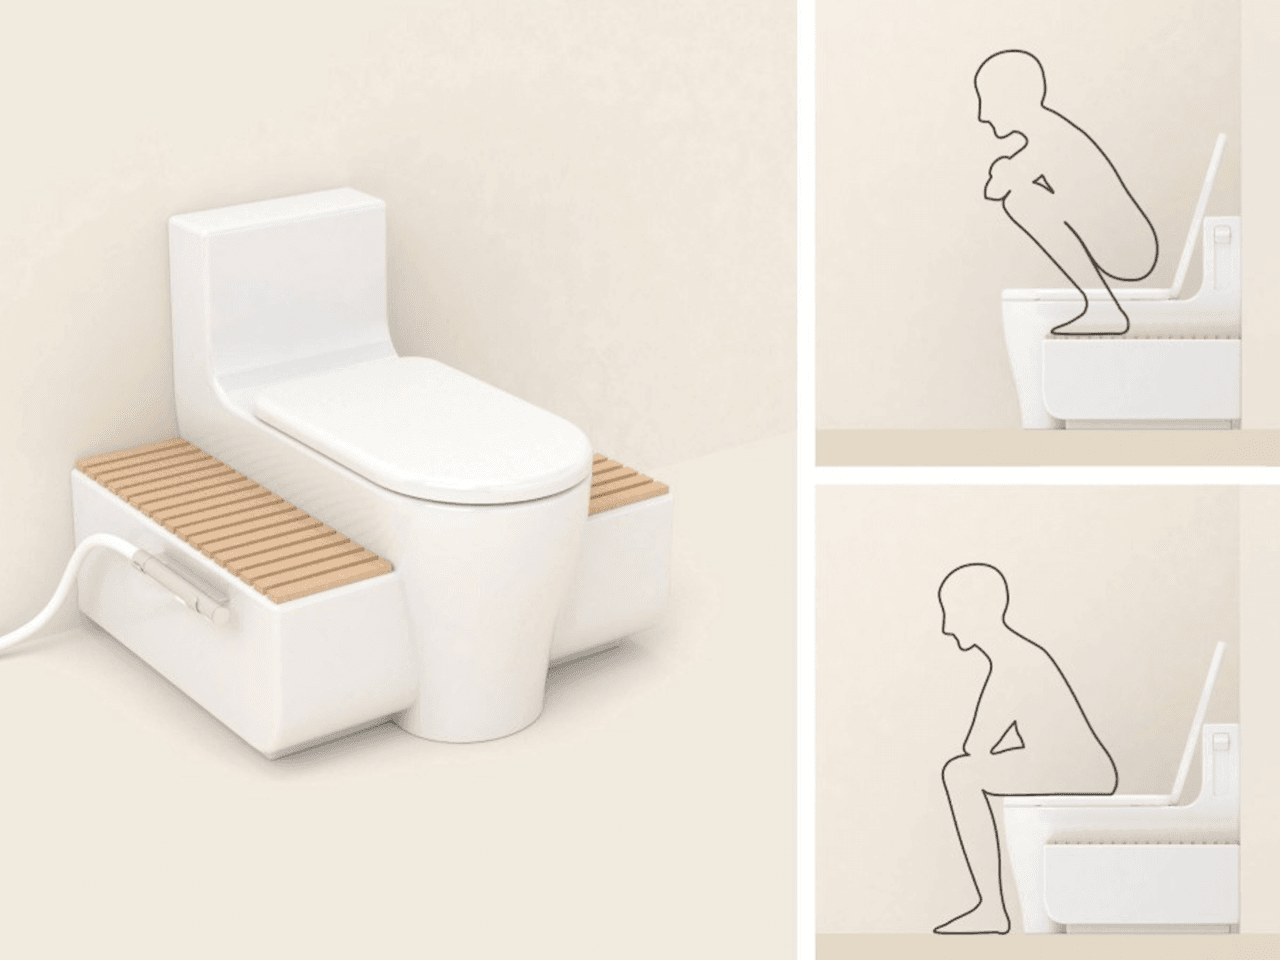 multicultural toilets for global defecation seek to stop migrants pooping on the floor breitbart